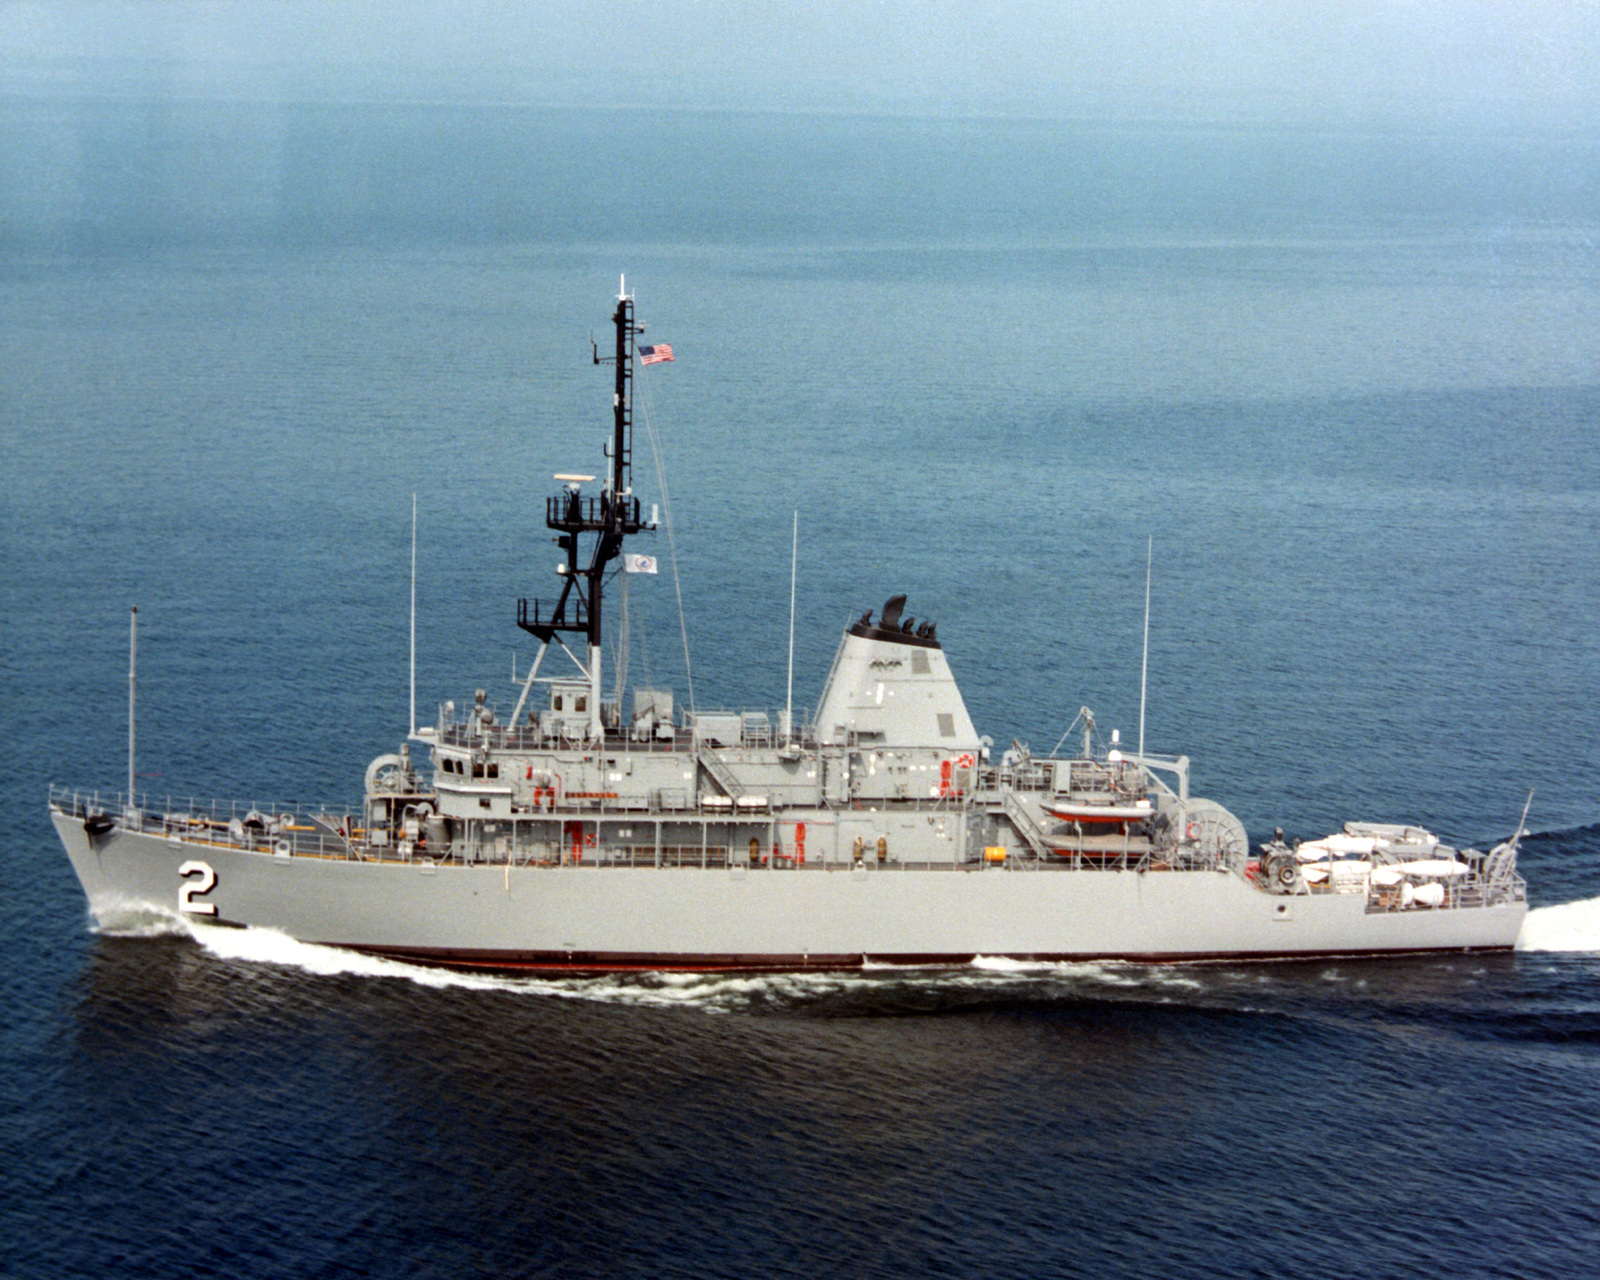 A port beam view of the mine countermeasures ship USS